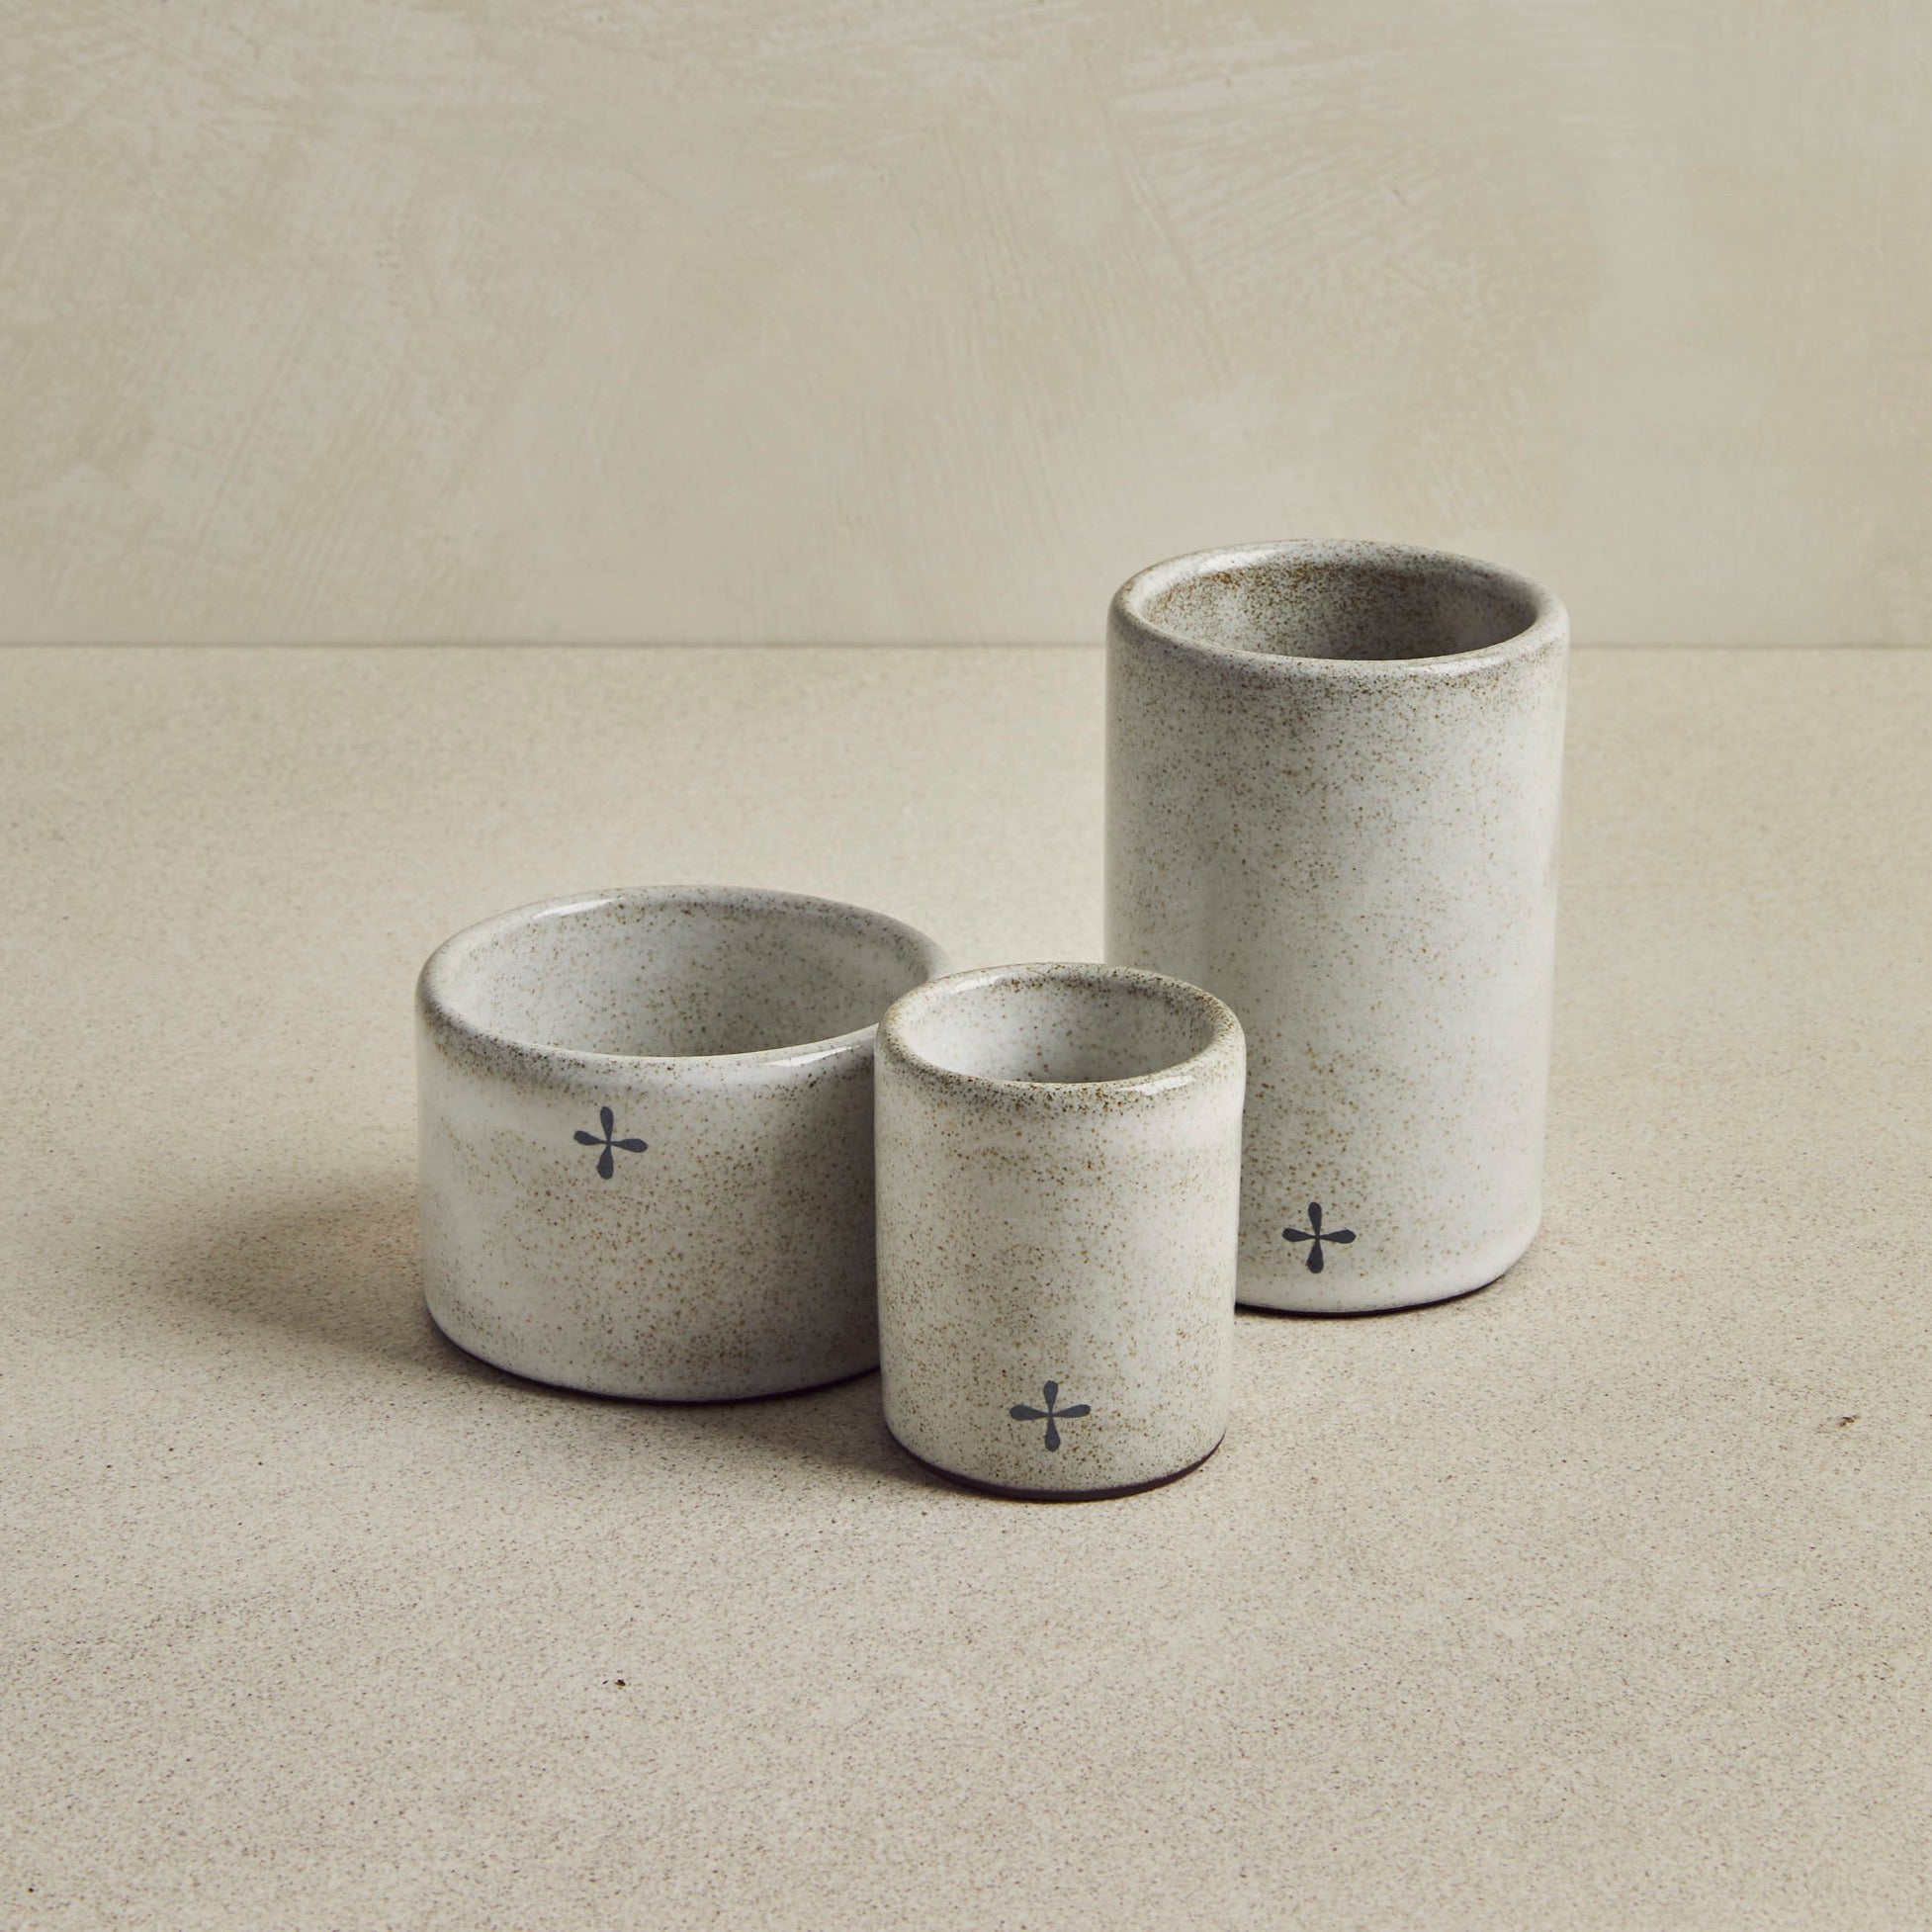 trio of grey ceramic glasses on a beige background